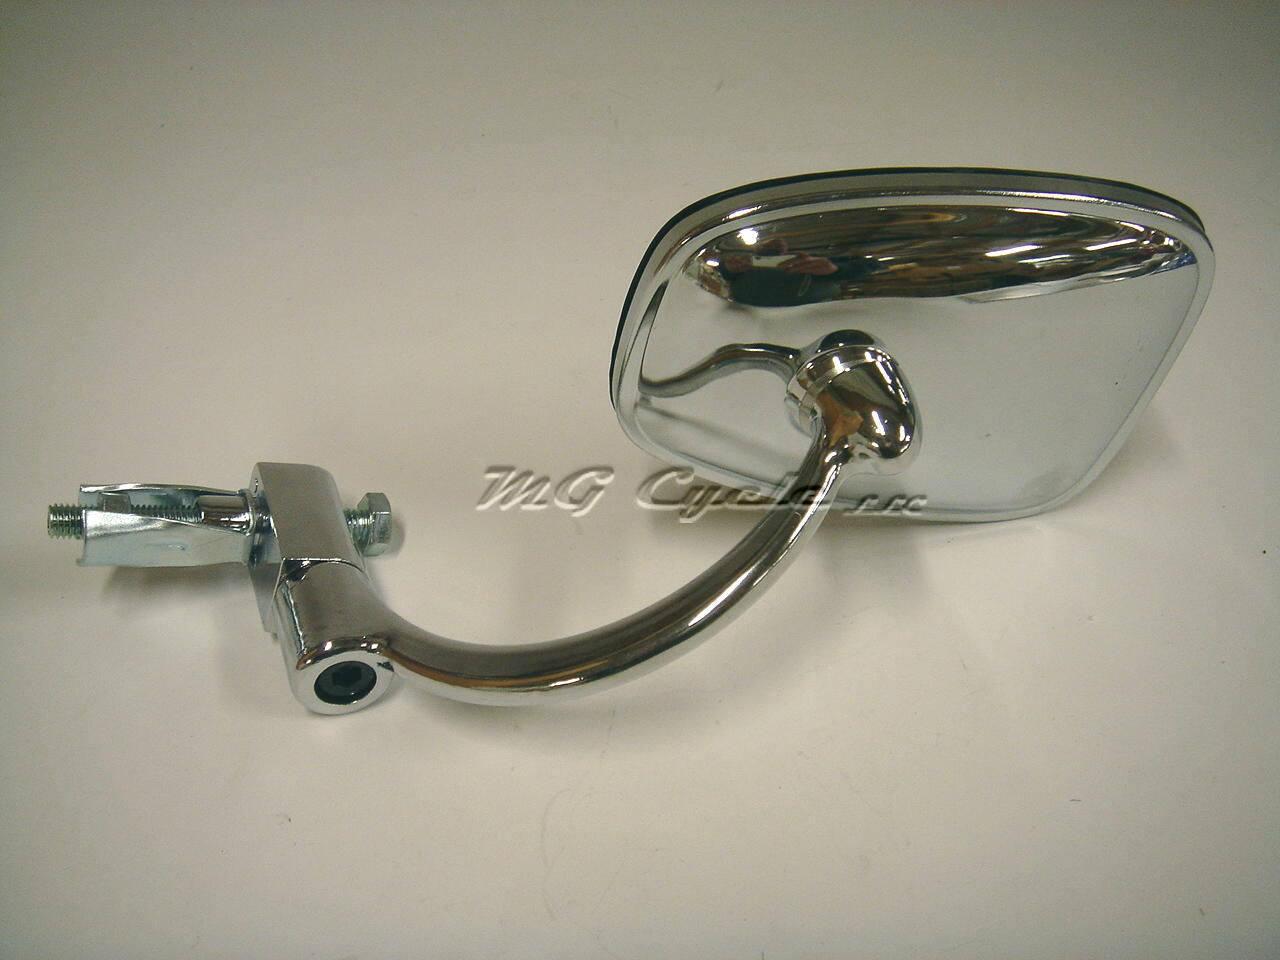 chrome plated handlebar end mirror, bar end mirror